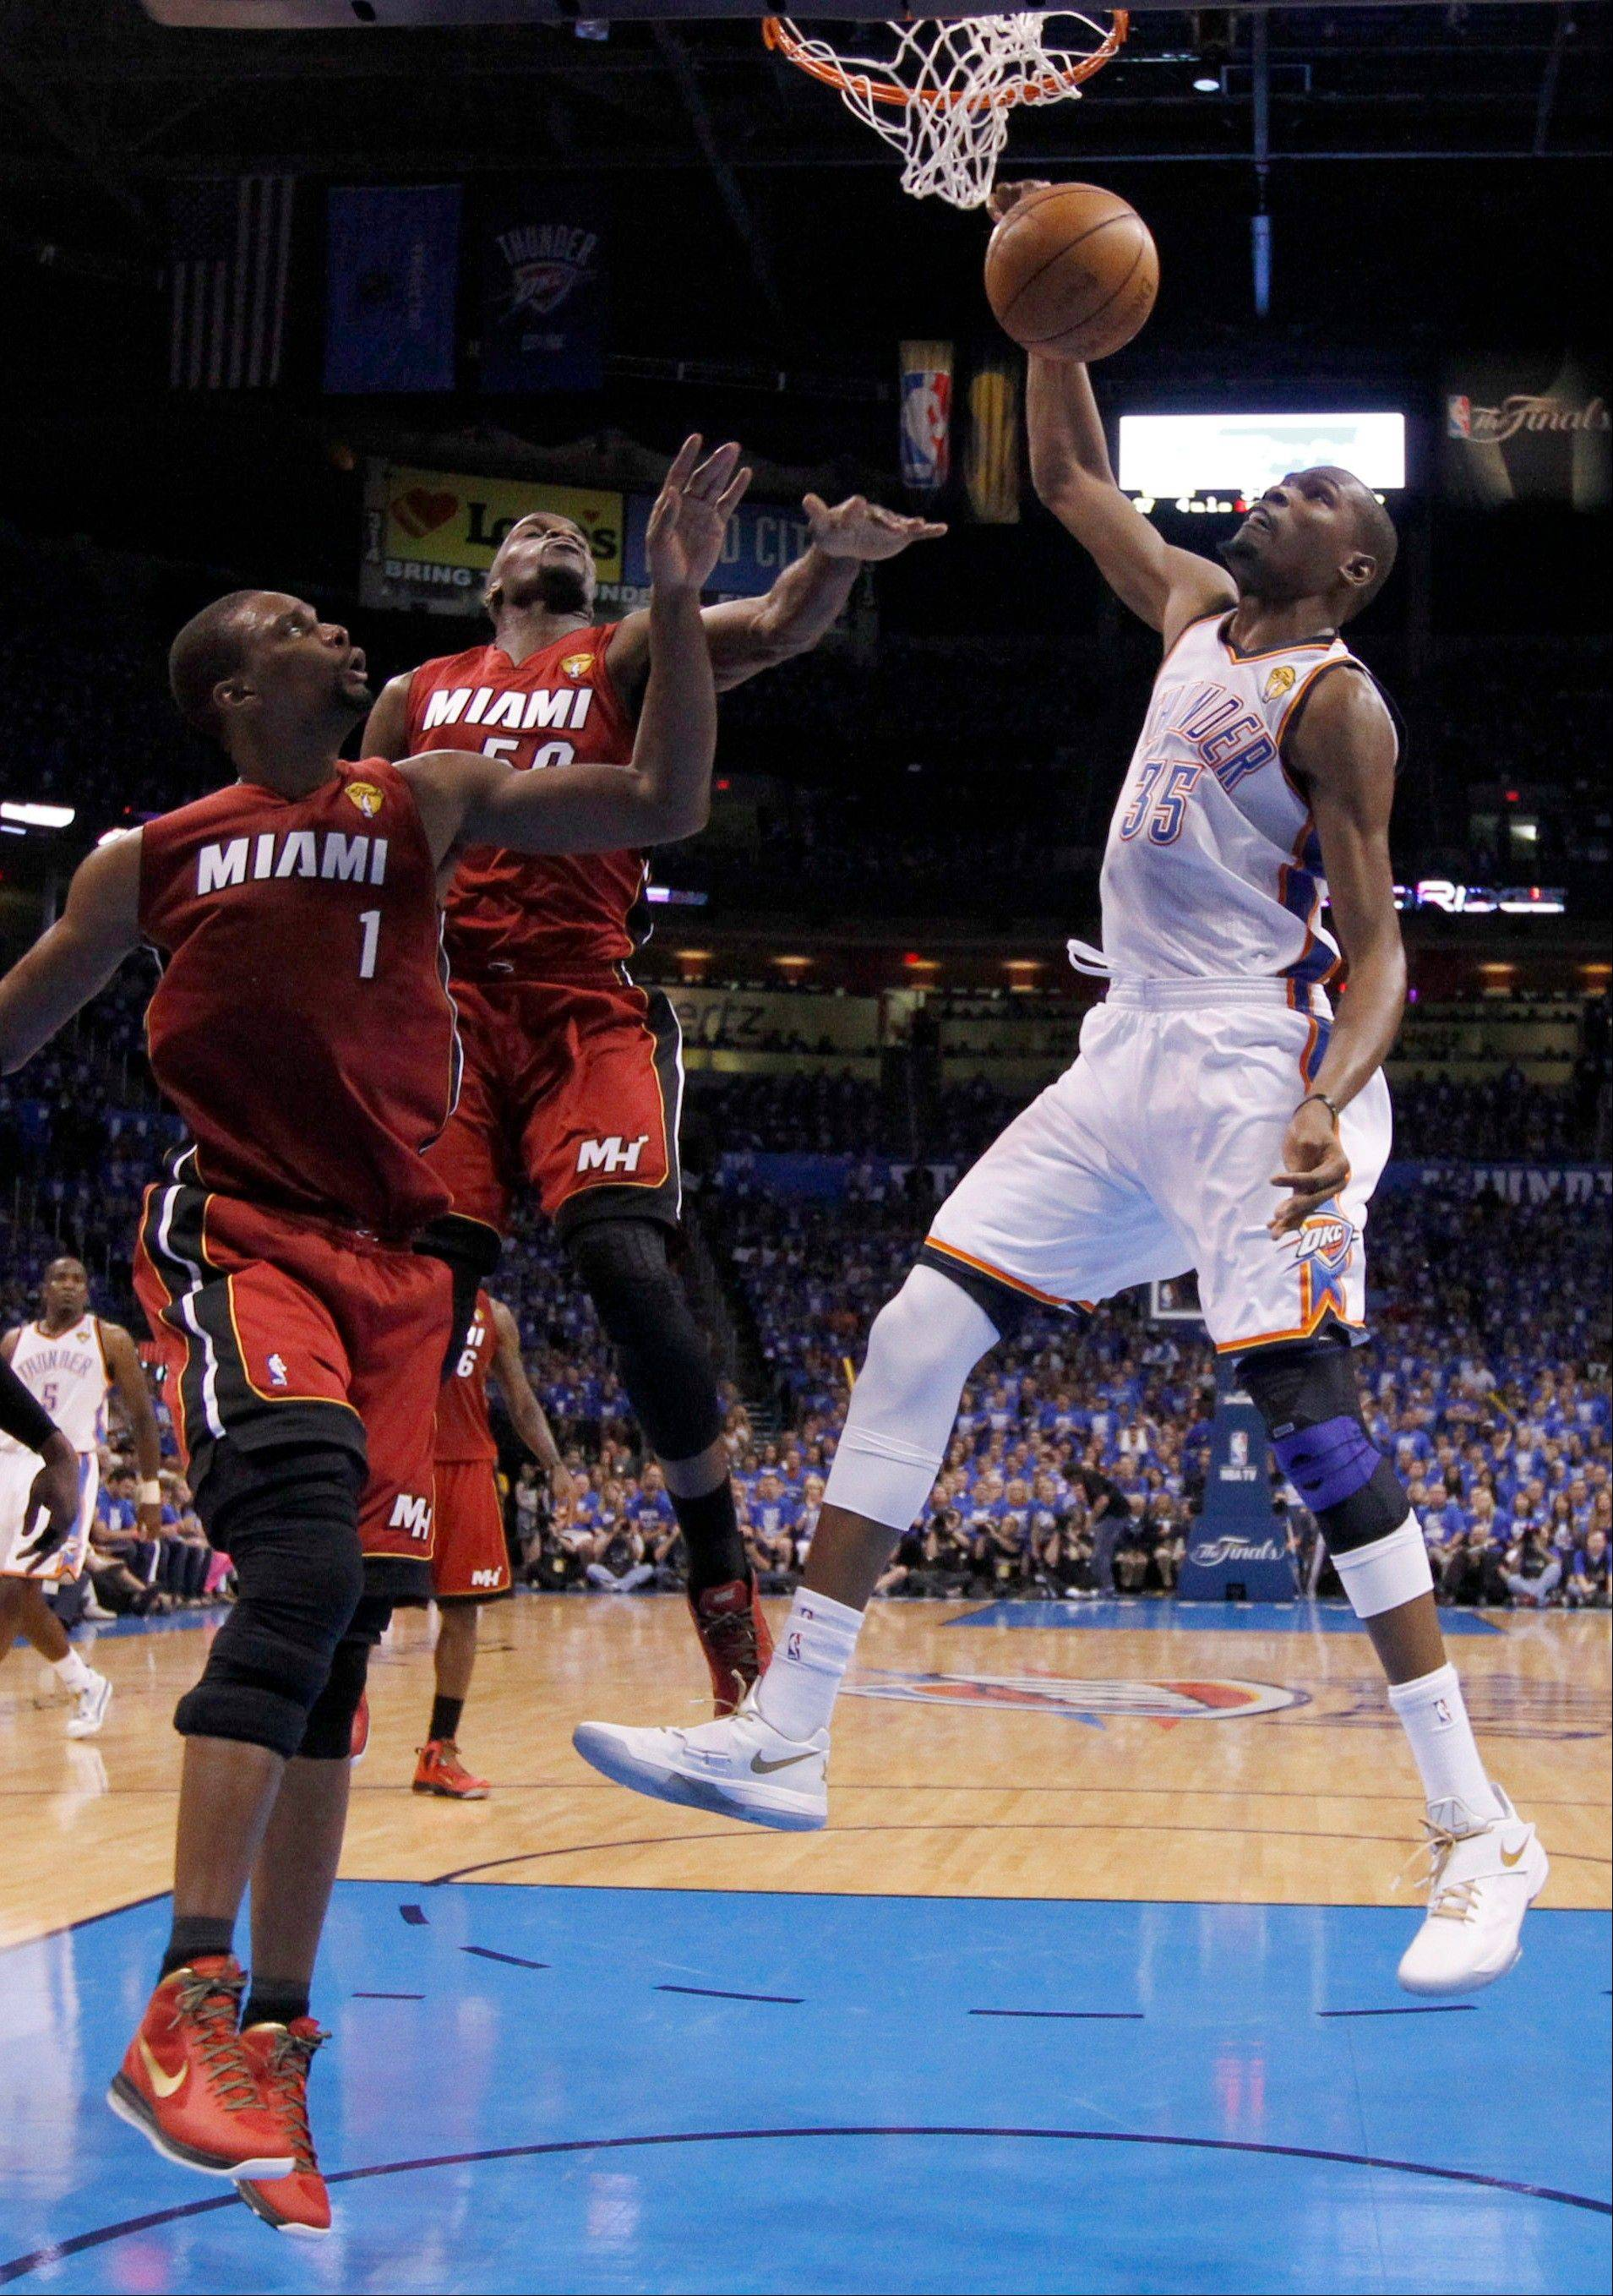 Oklahoma City Thunder small forward Kevin Durant (35) dunks as Miami Heat power forward Chris Bosh and center Joel Anthony defend during the first half Tuesday during Game 1 of the NBA Finals in Oklahoma City.